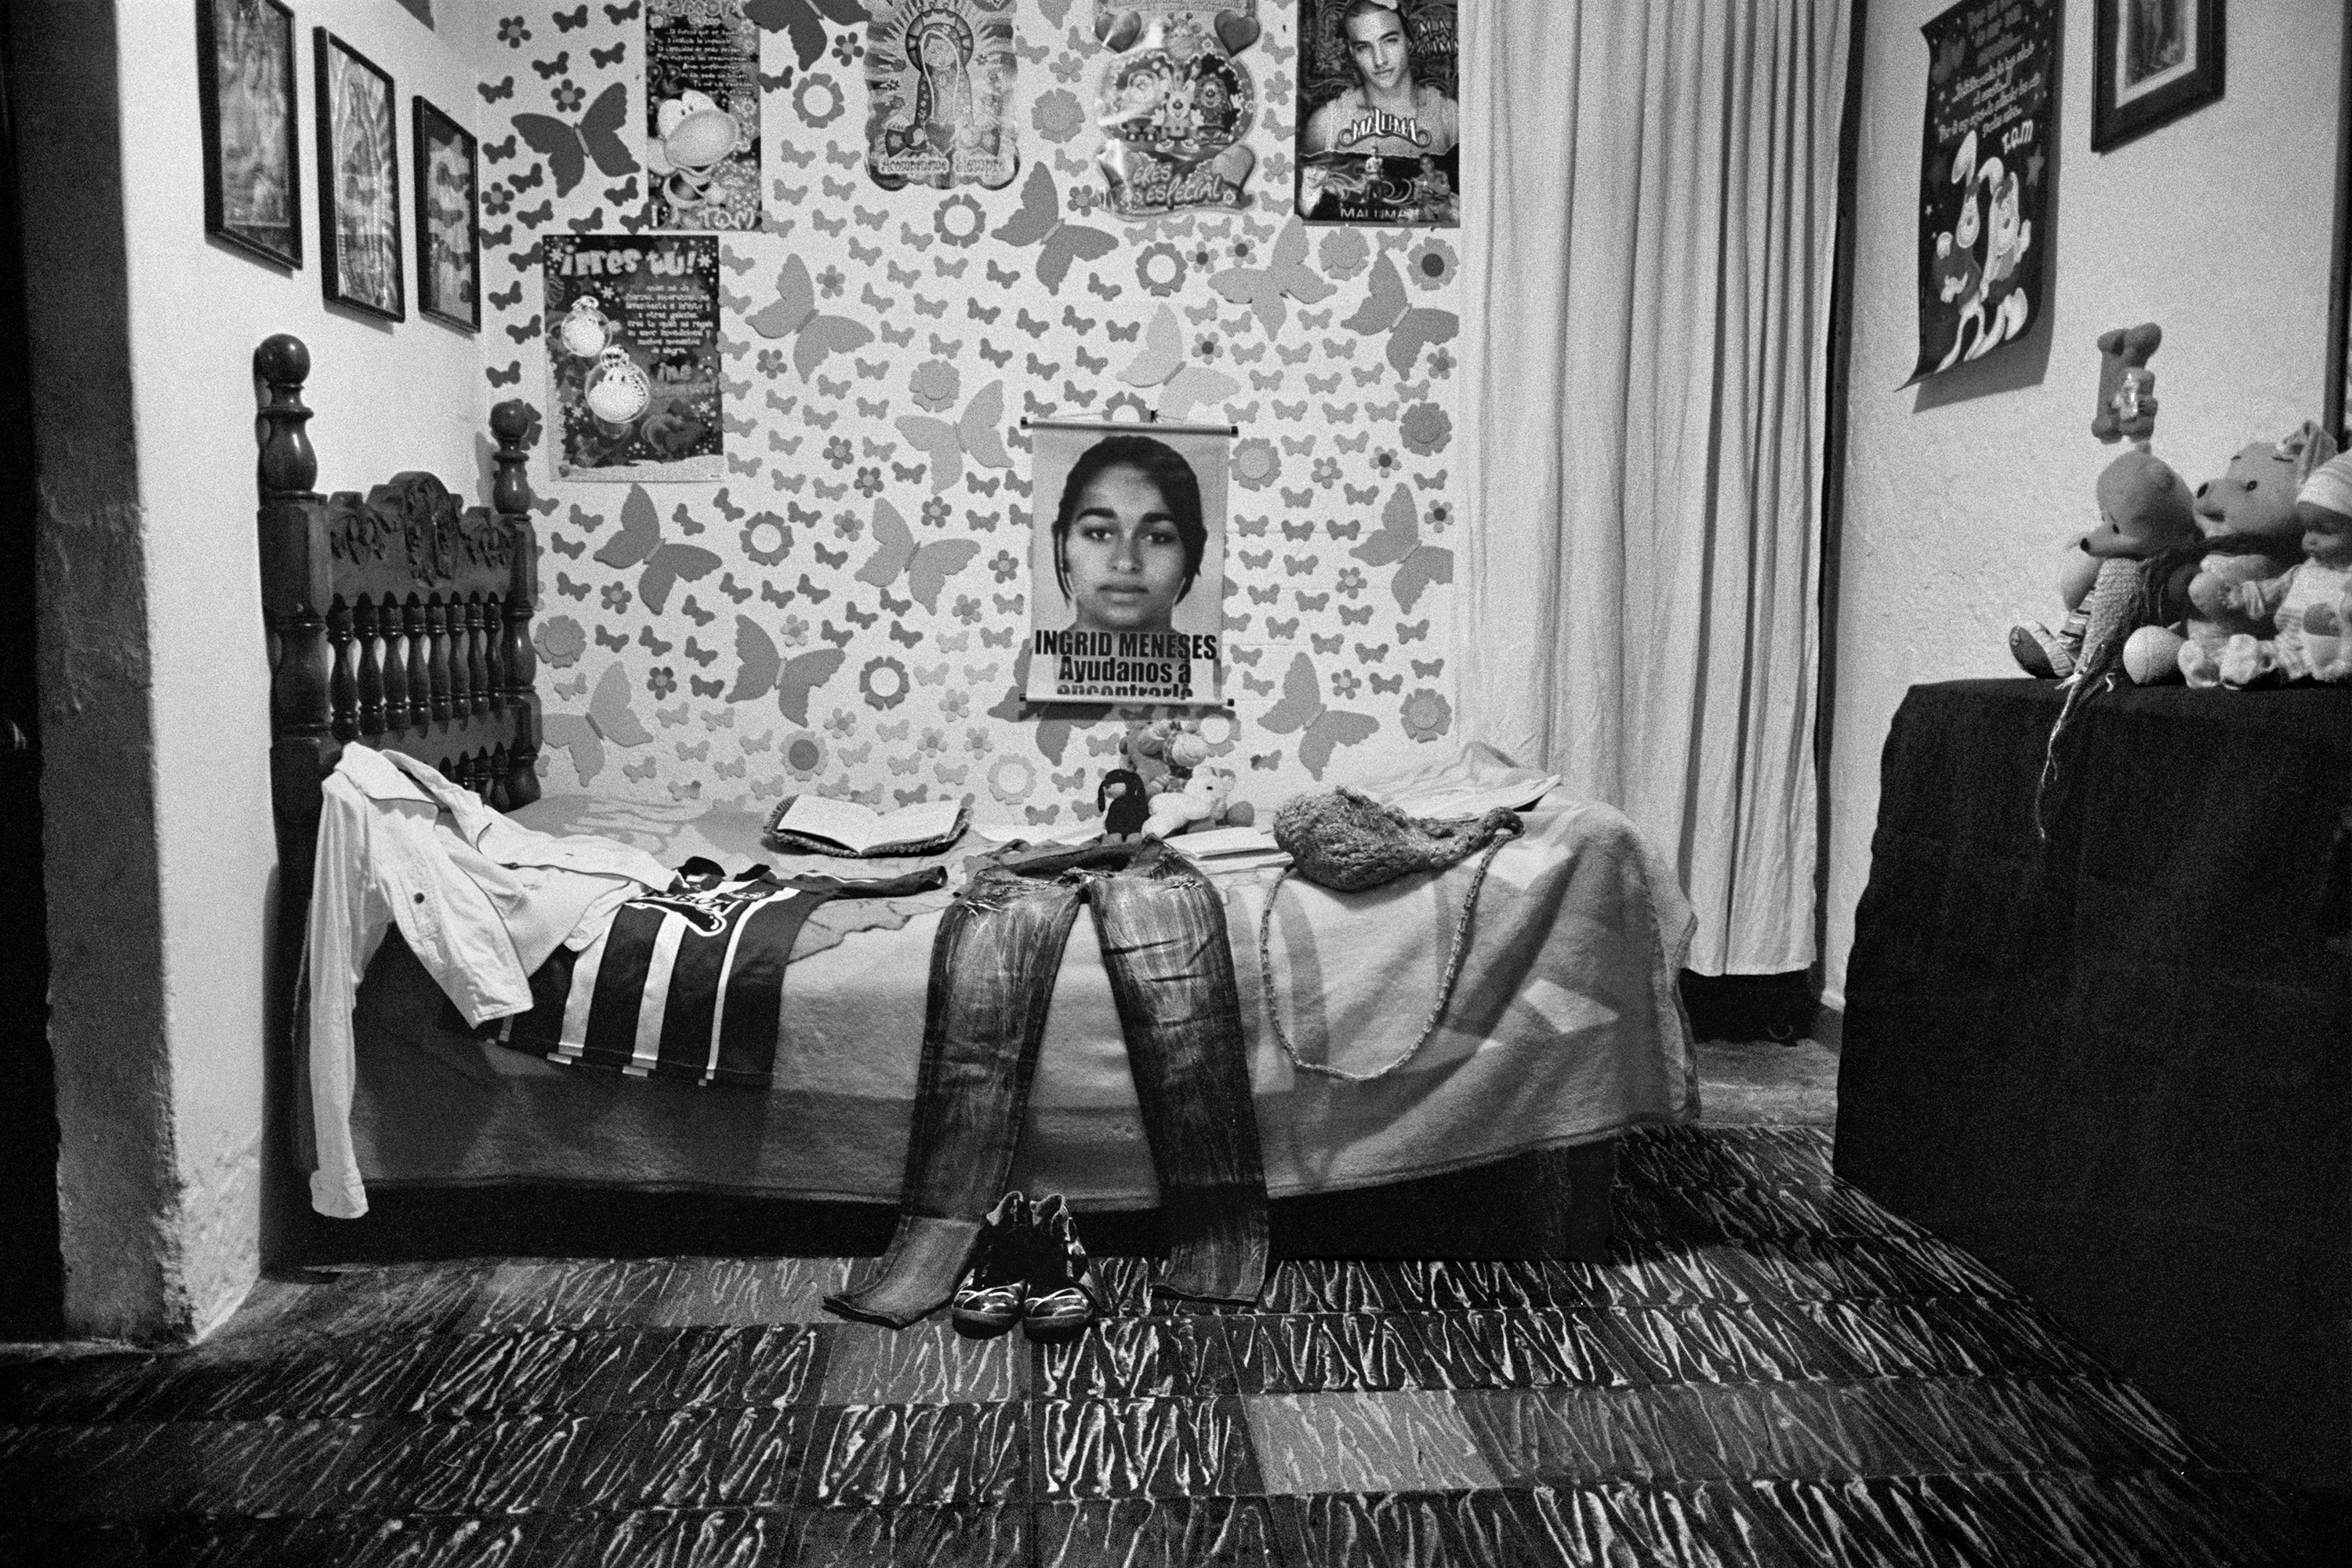 The bed of Ingrid Medarno Perez who disappeared in Yarumal, Colombia has become a shrine inside the family home of Martha and Antonio, Ingrid's parents. At eleven in the morning on Nov. 29, 2010, a member of the paramilitary group of the Urabeños went to her home, where she was with her boyfriend. It was not until March 2015, that Julian Bolivar, a former paramilitary commander informed the family that Ingrid and her boyfriend were executed that same day. Their bodies were crushed and thrown into the river. Their remains were never recovered, Feb. 2015.